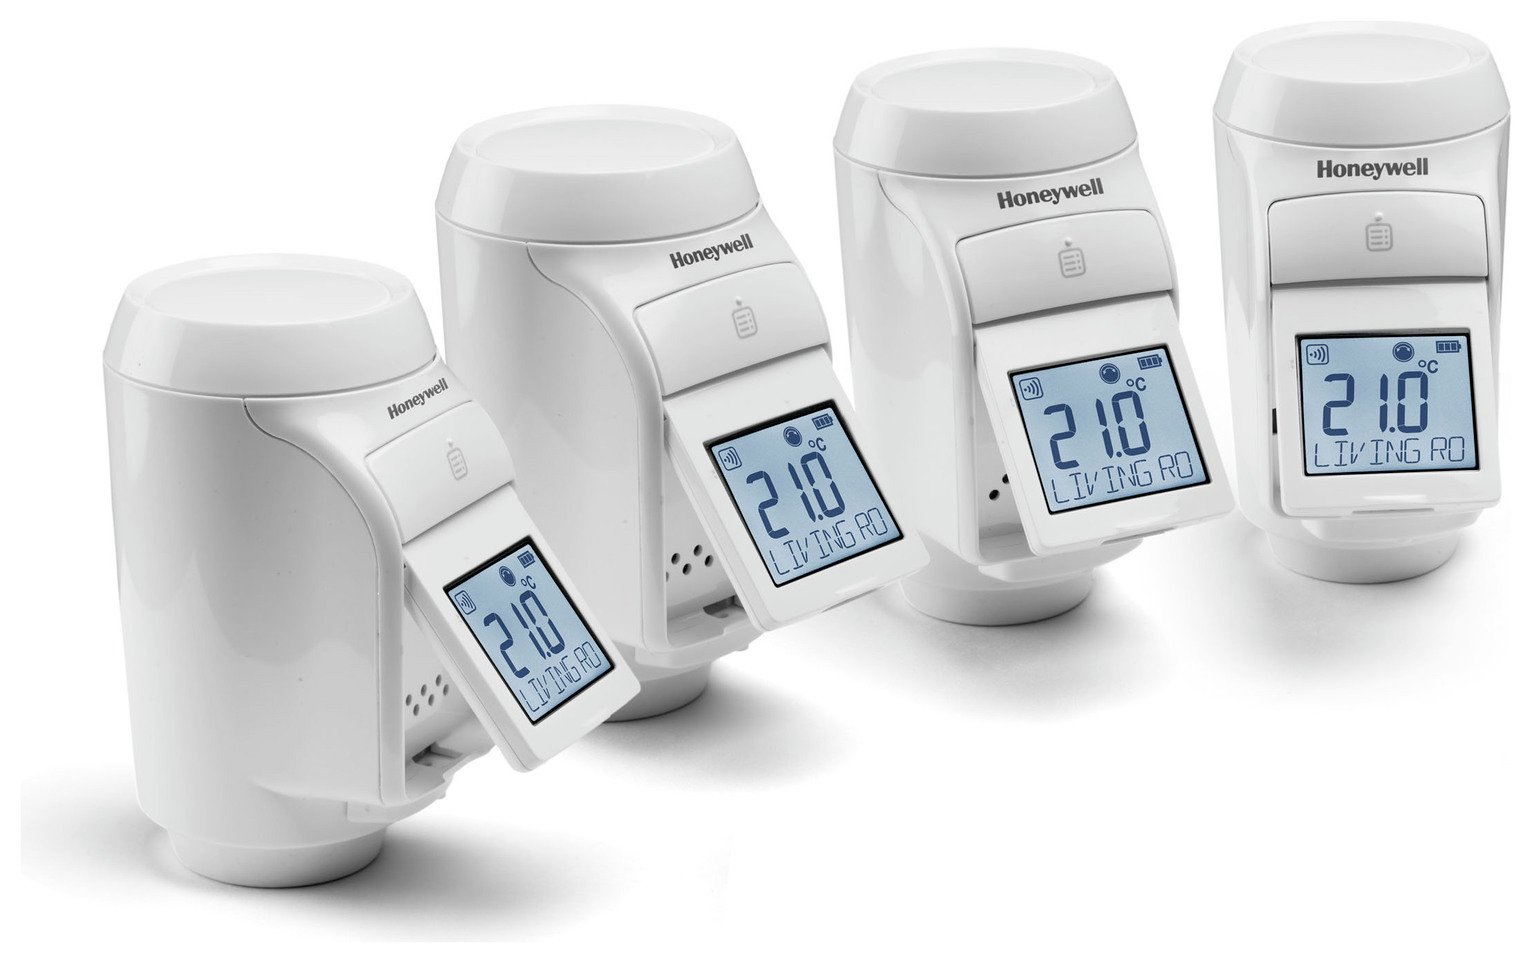 Honeywell Evohome Radiator Multi Zone Kit